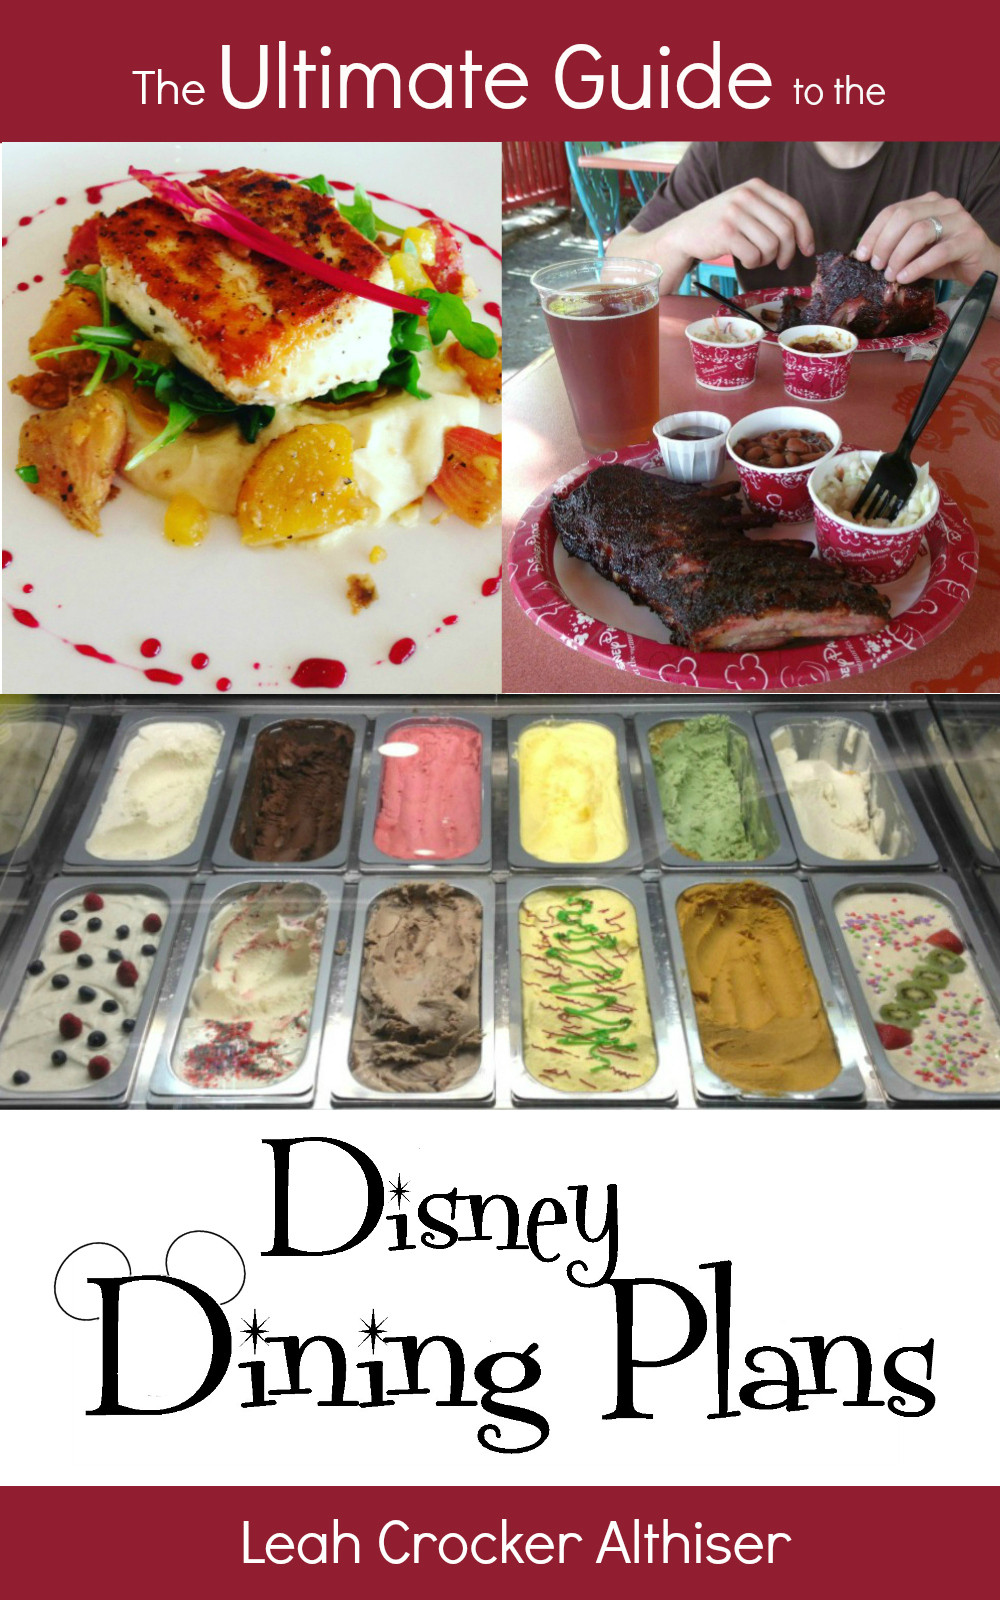 The Ultimate Guide to the Disney Dining Plans